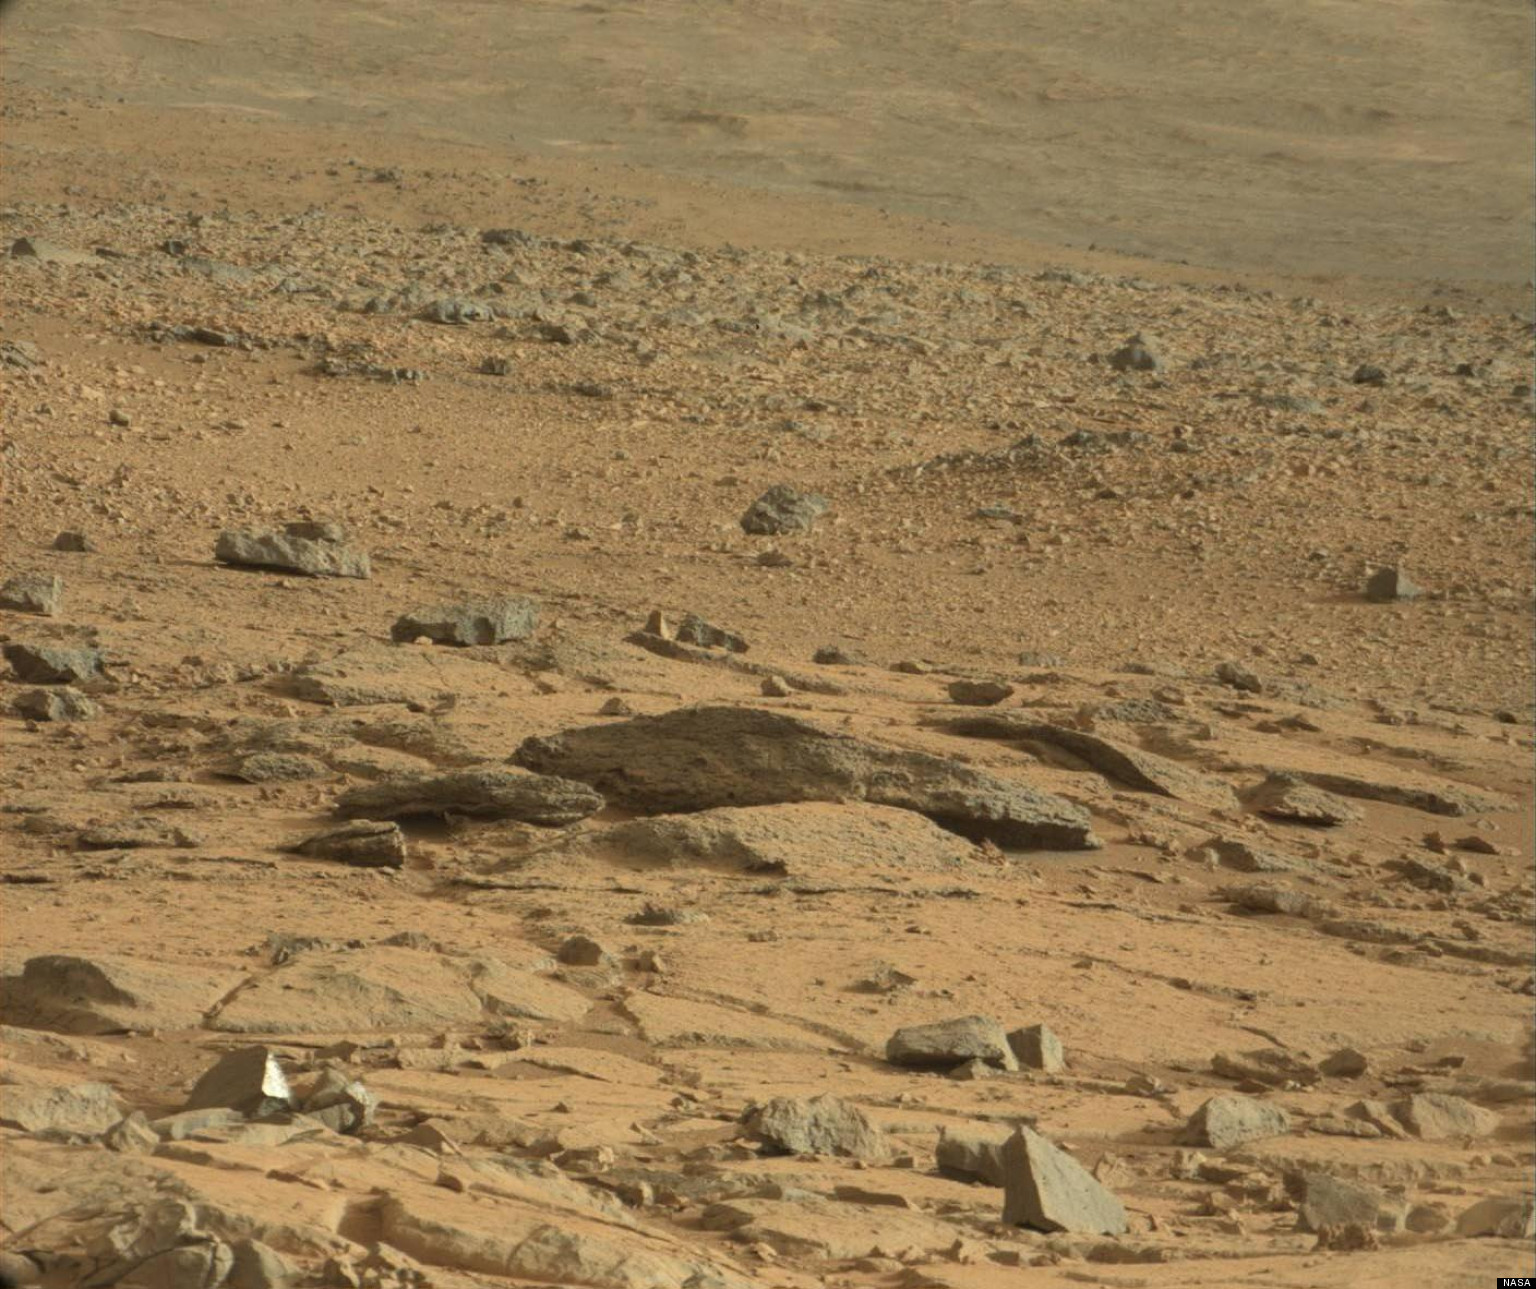 mars rover finds animal - photo #47